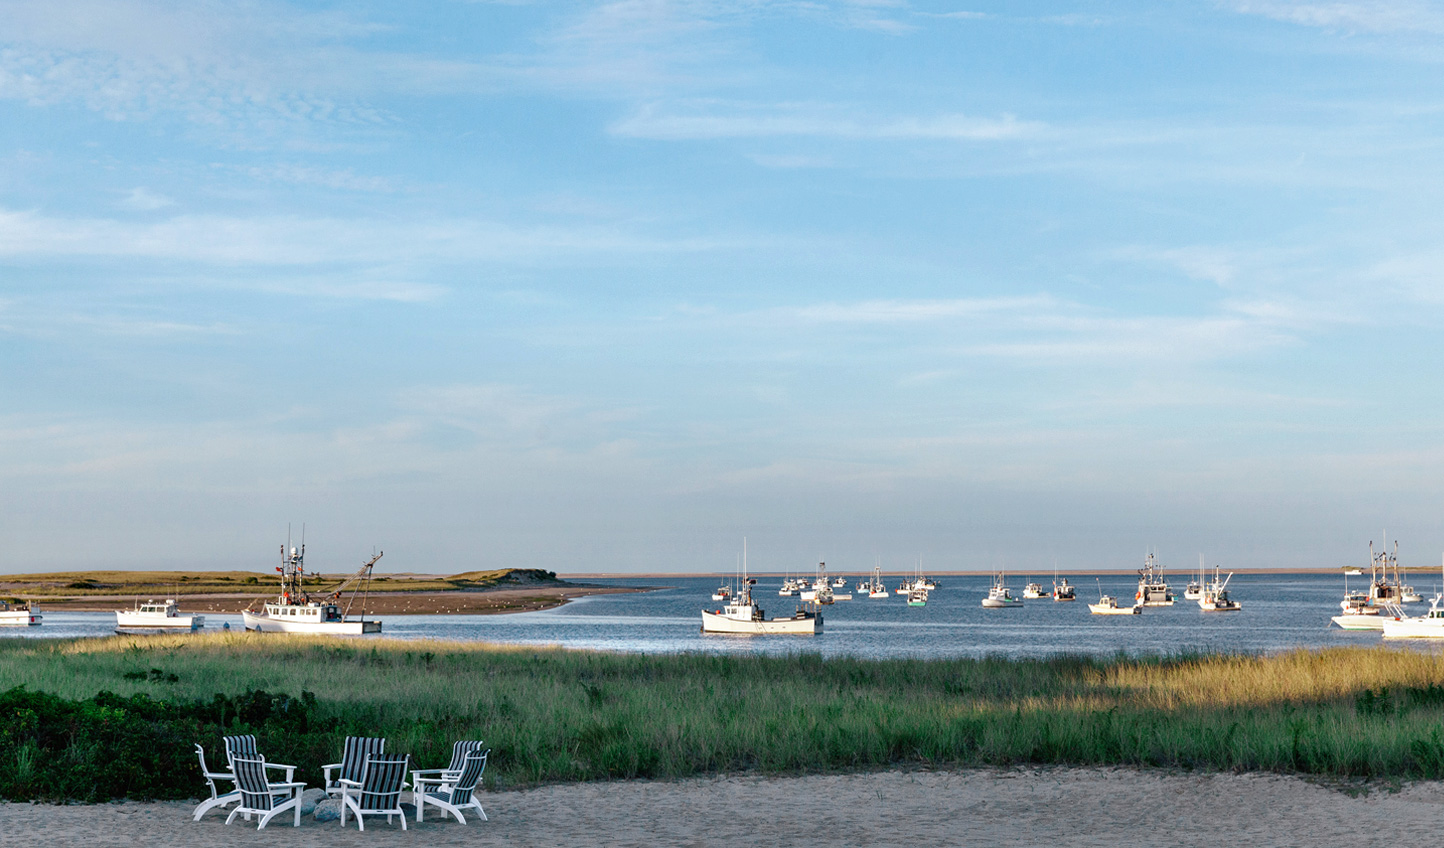 Uninterrupted views of the Atlantic Ocean and the Chatham Harbour